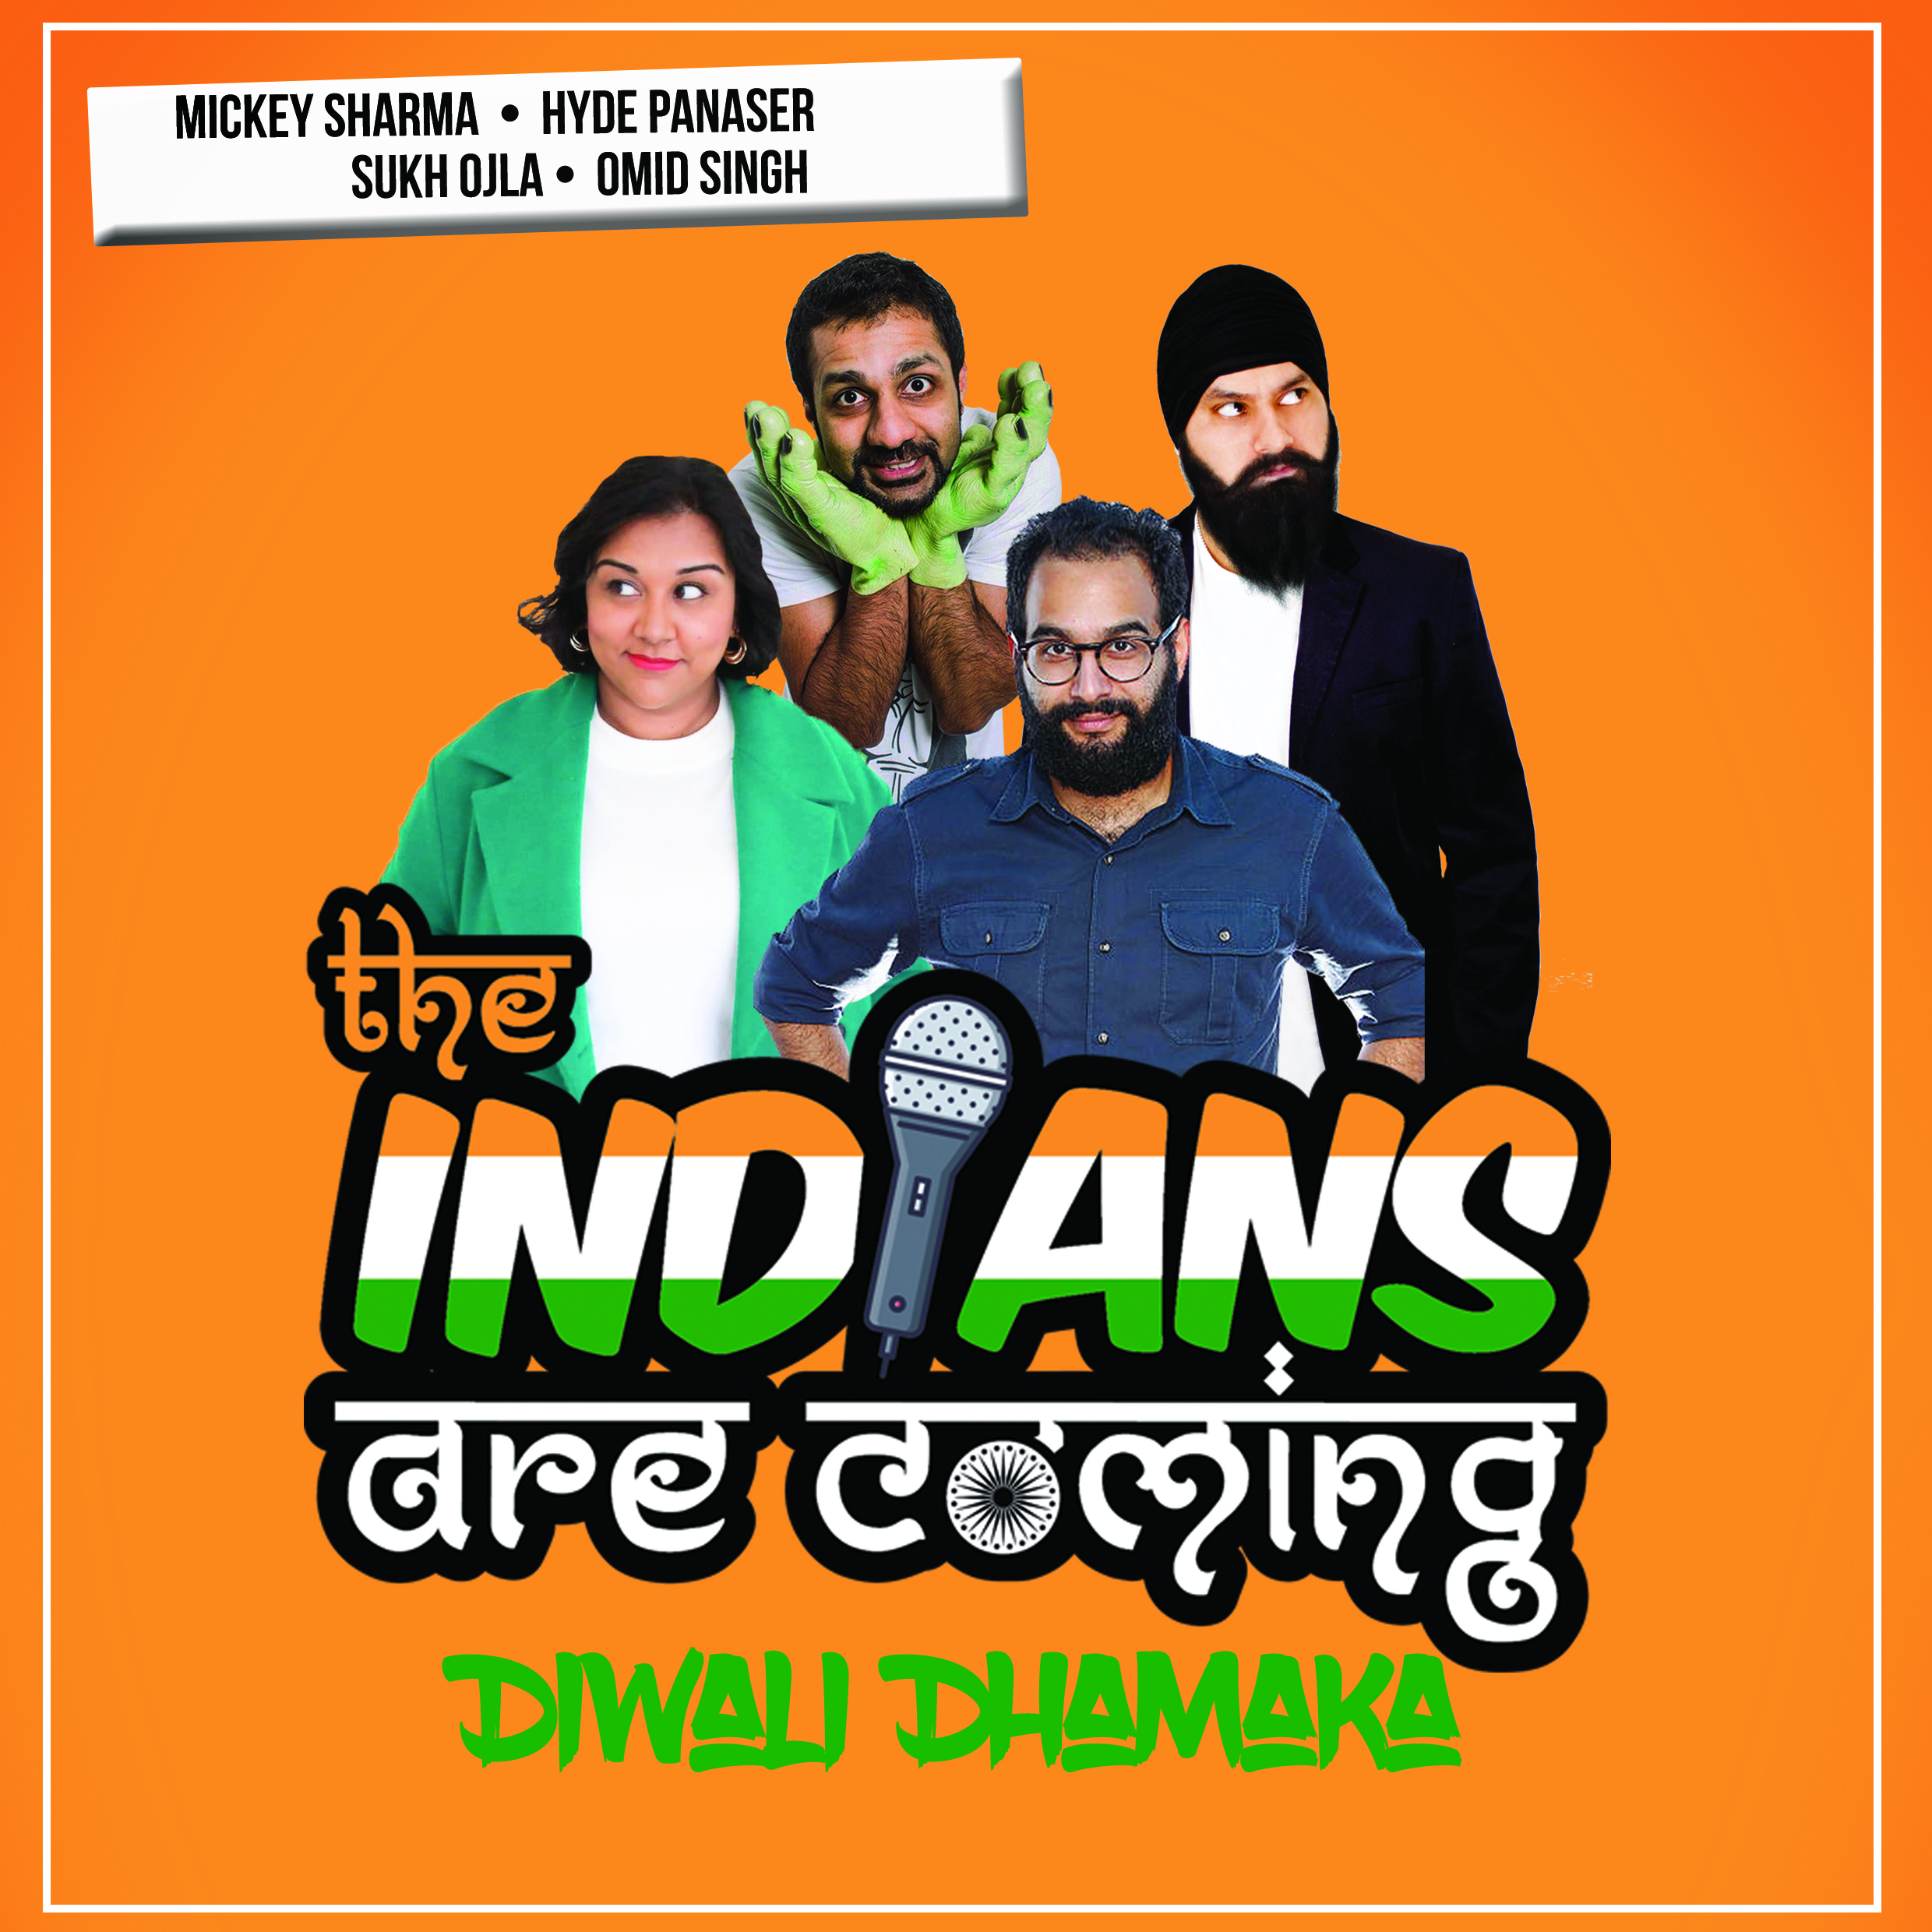 Image for - The Indians Are Coming : Diwali Dhamaka at The Slade Rooms